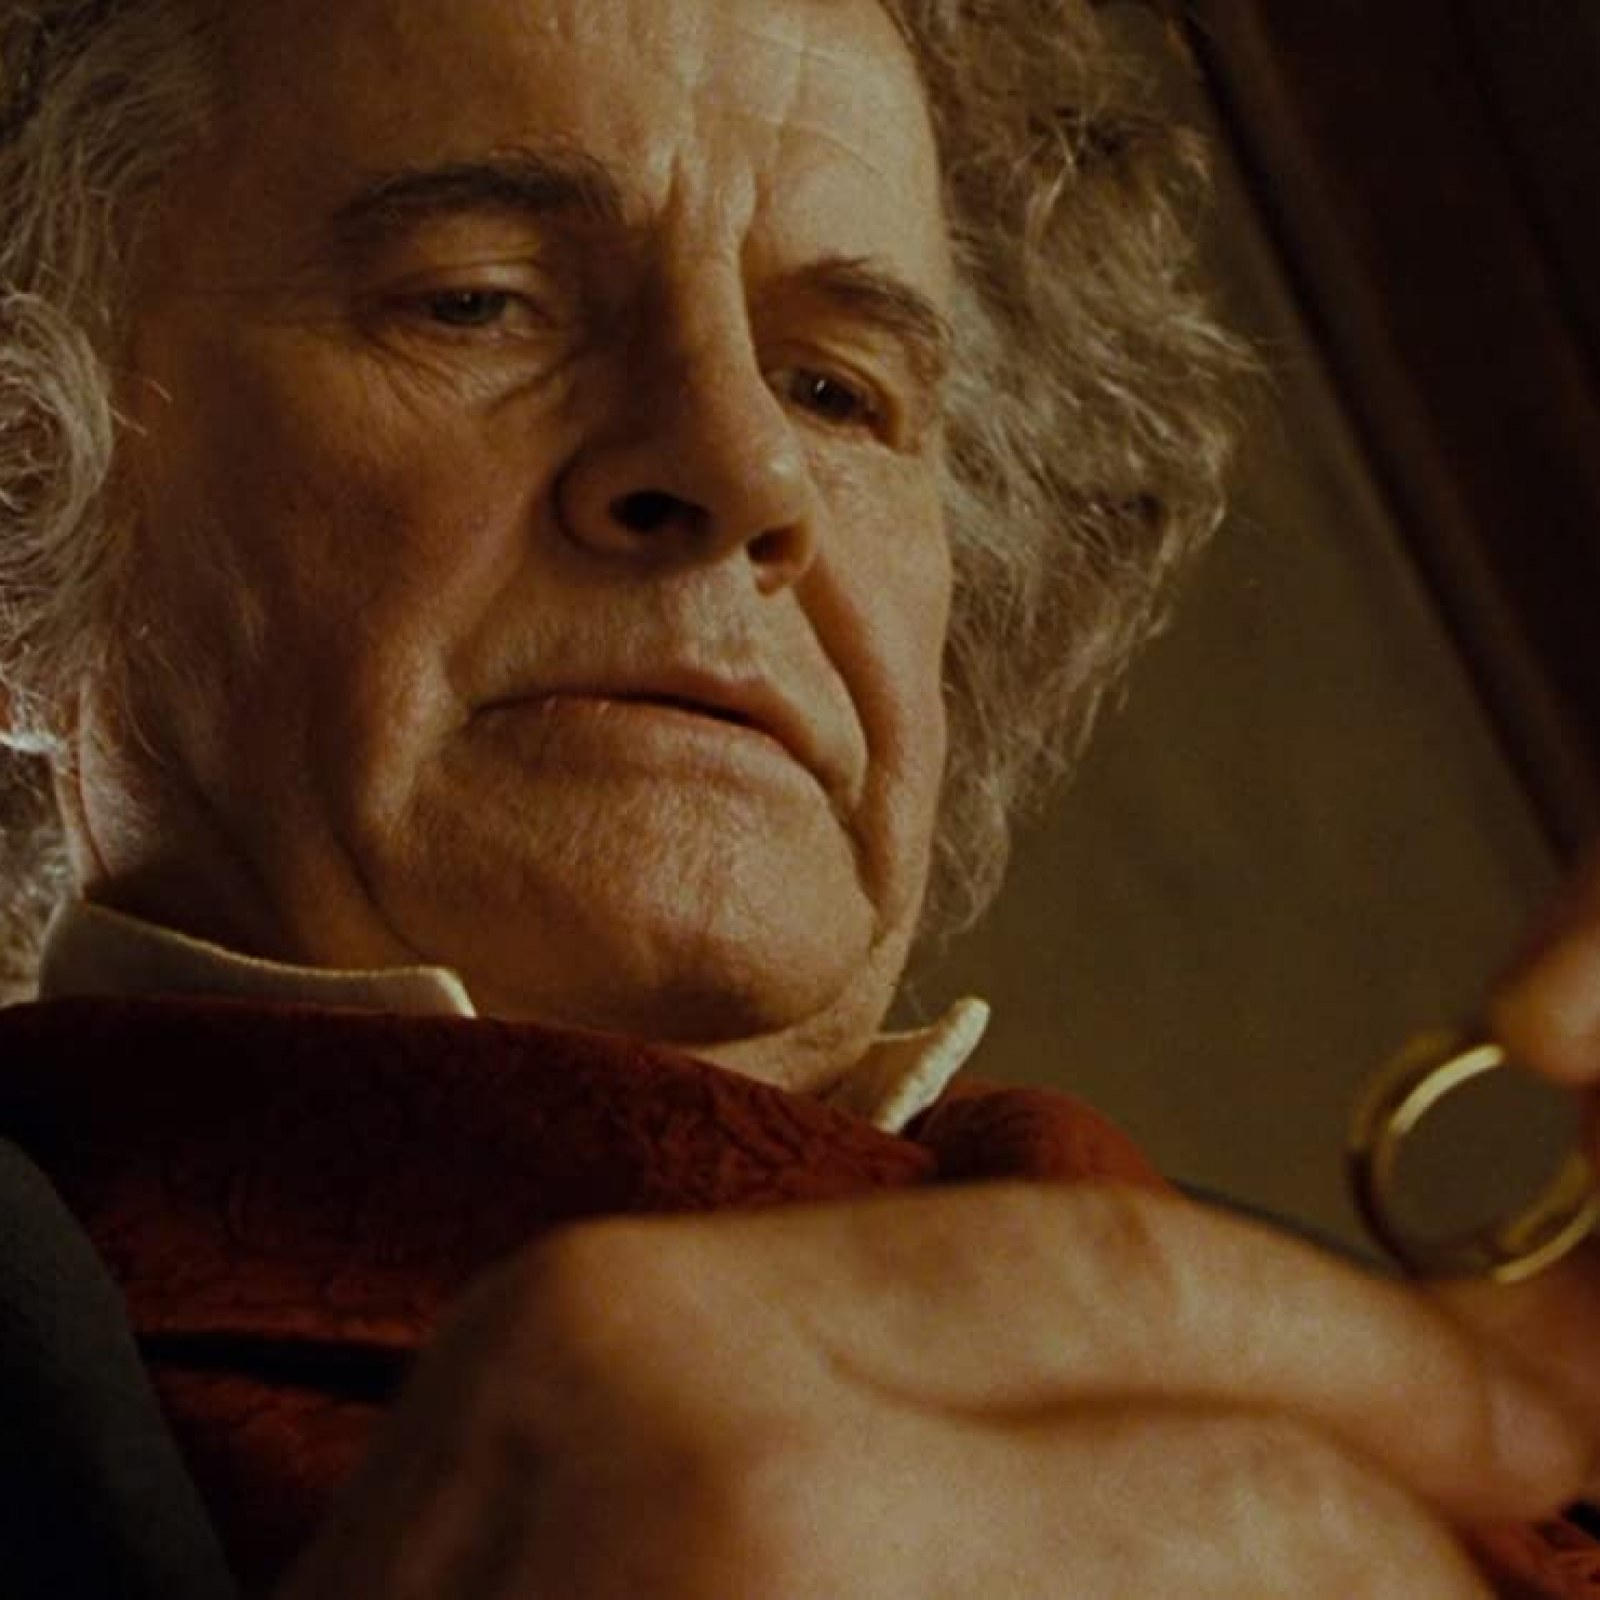 Ian Holm's Best Bilbo Baggins Quotes From 'The Lord of the Rings'